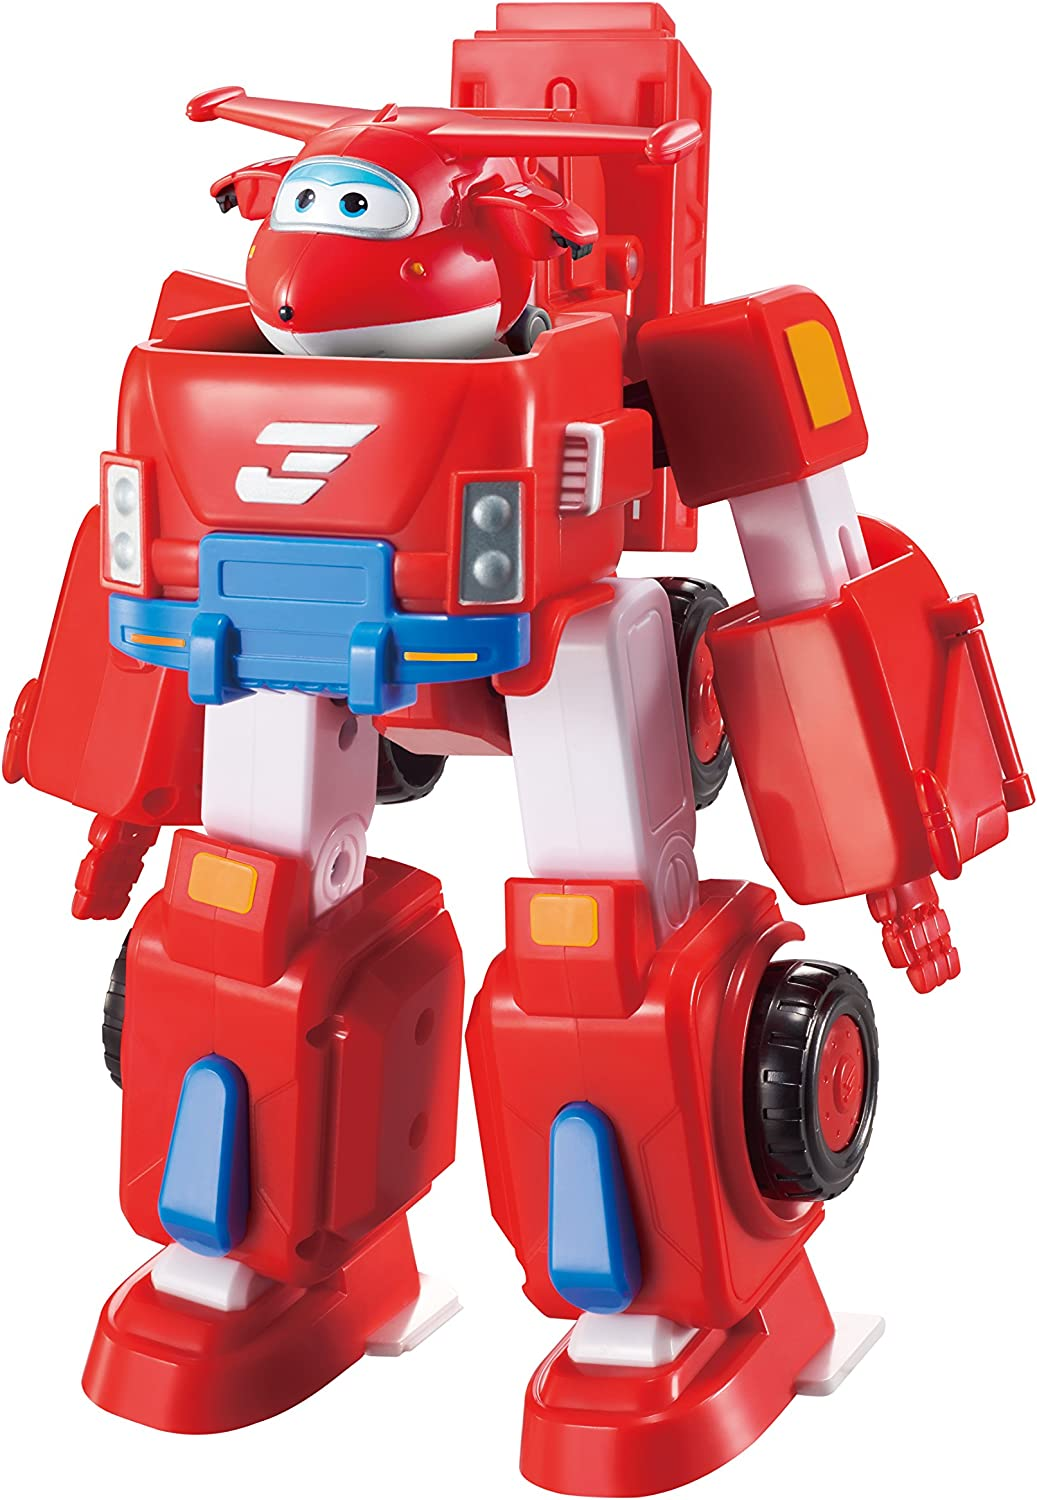 Super Wings- Deluxe Transforming Jett Vehicle, Color Rosso, 7 Pulgadas (Alpha Animation & Toys Ltd EU720311)